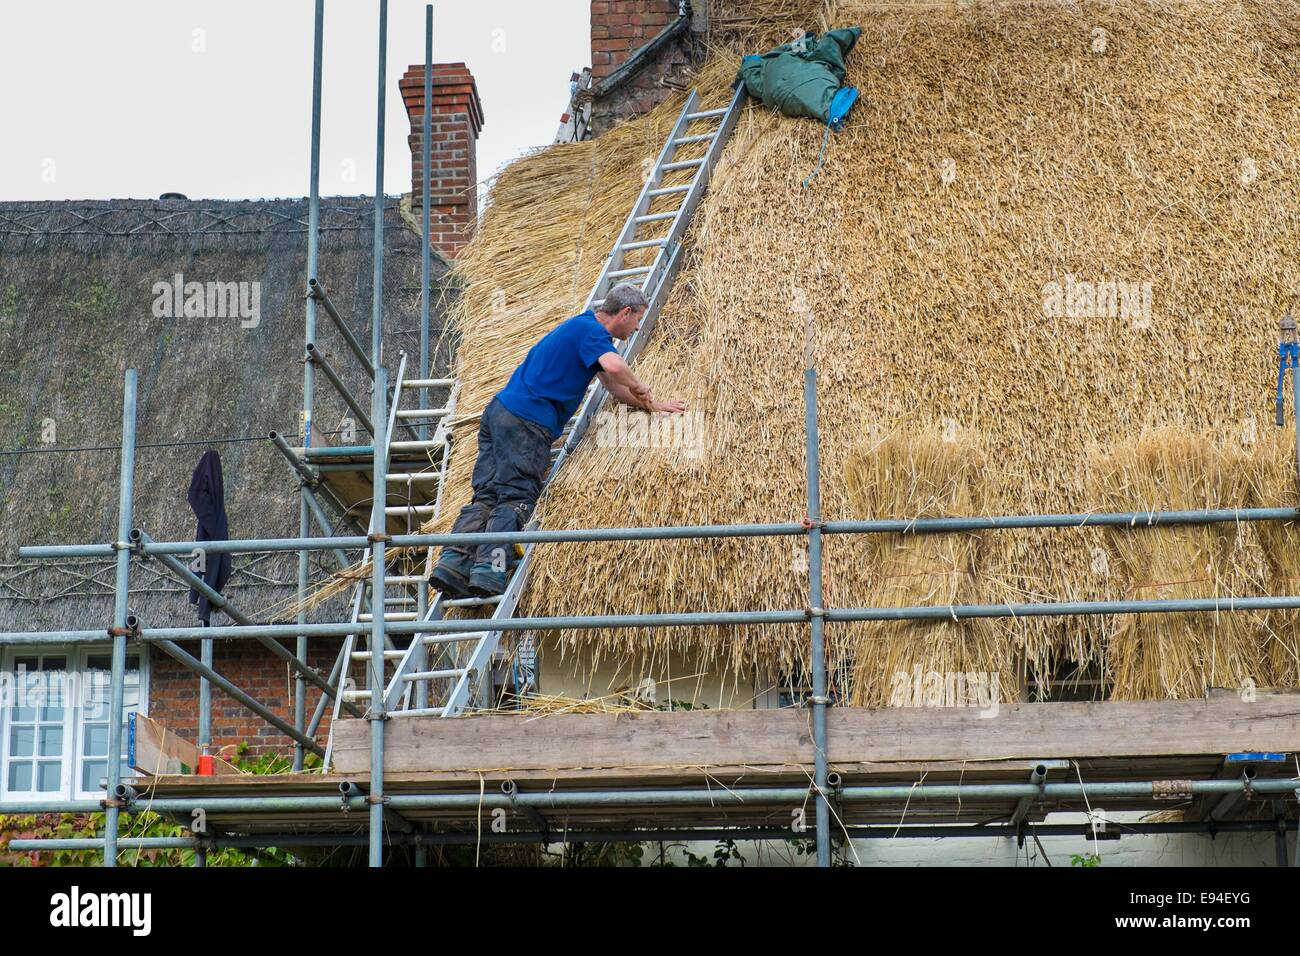 Thatcher re roofing with wheatgrass thatch. - Stock Image